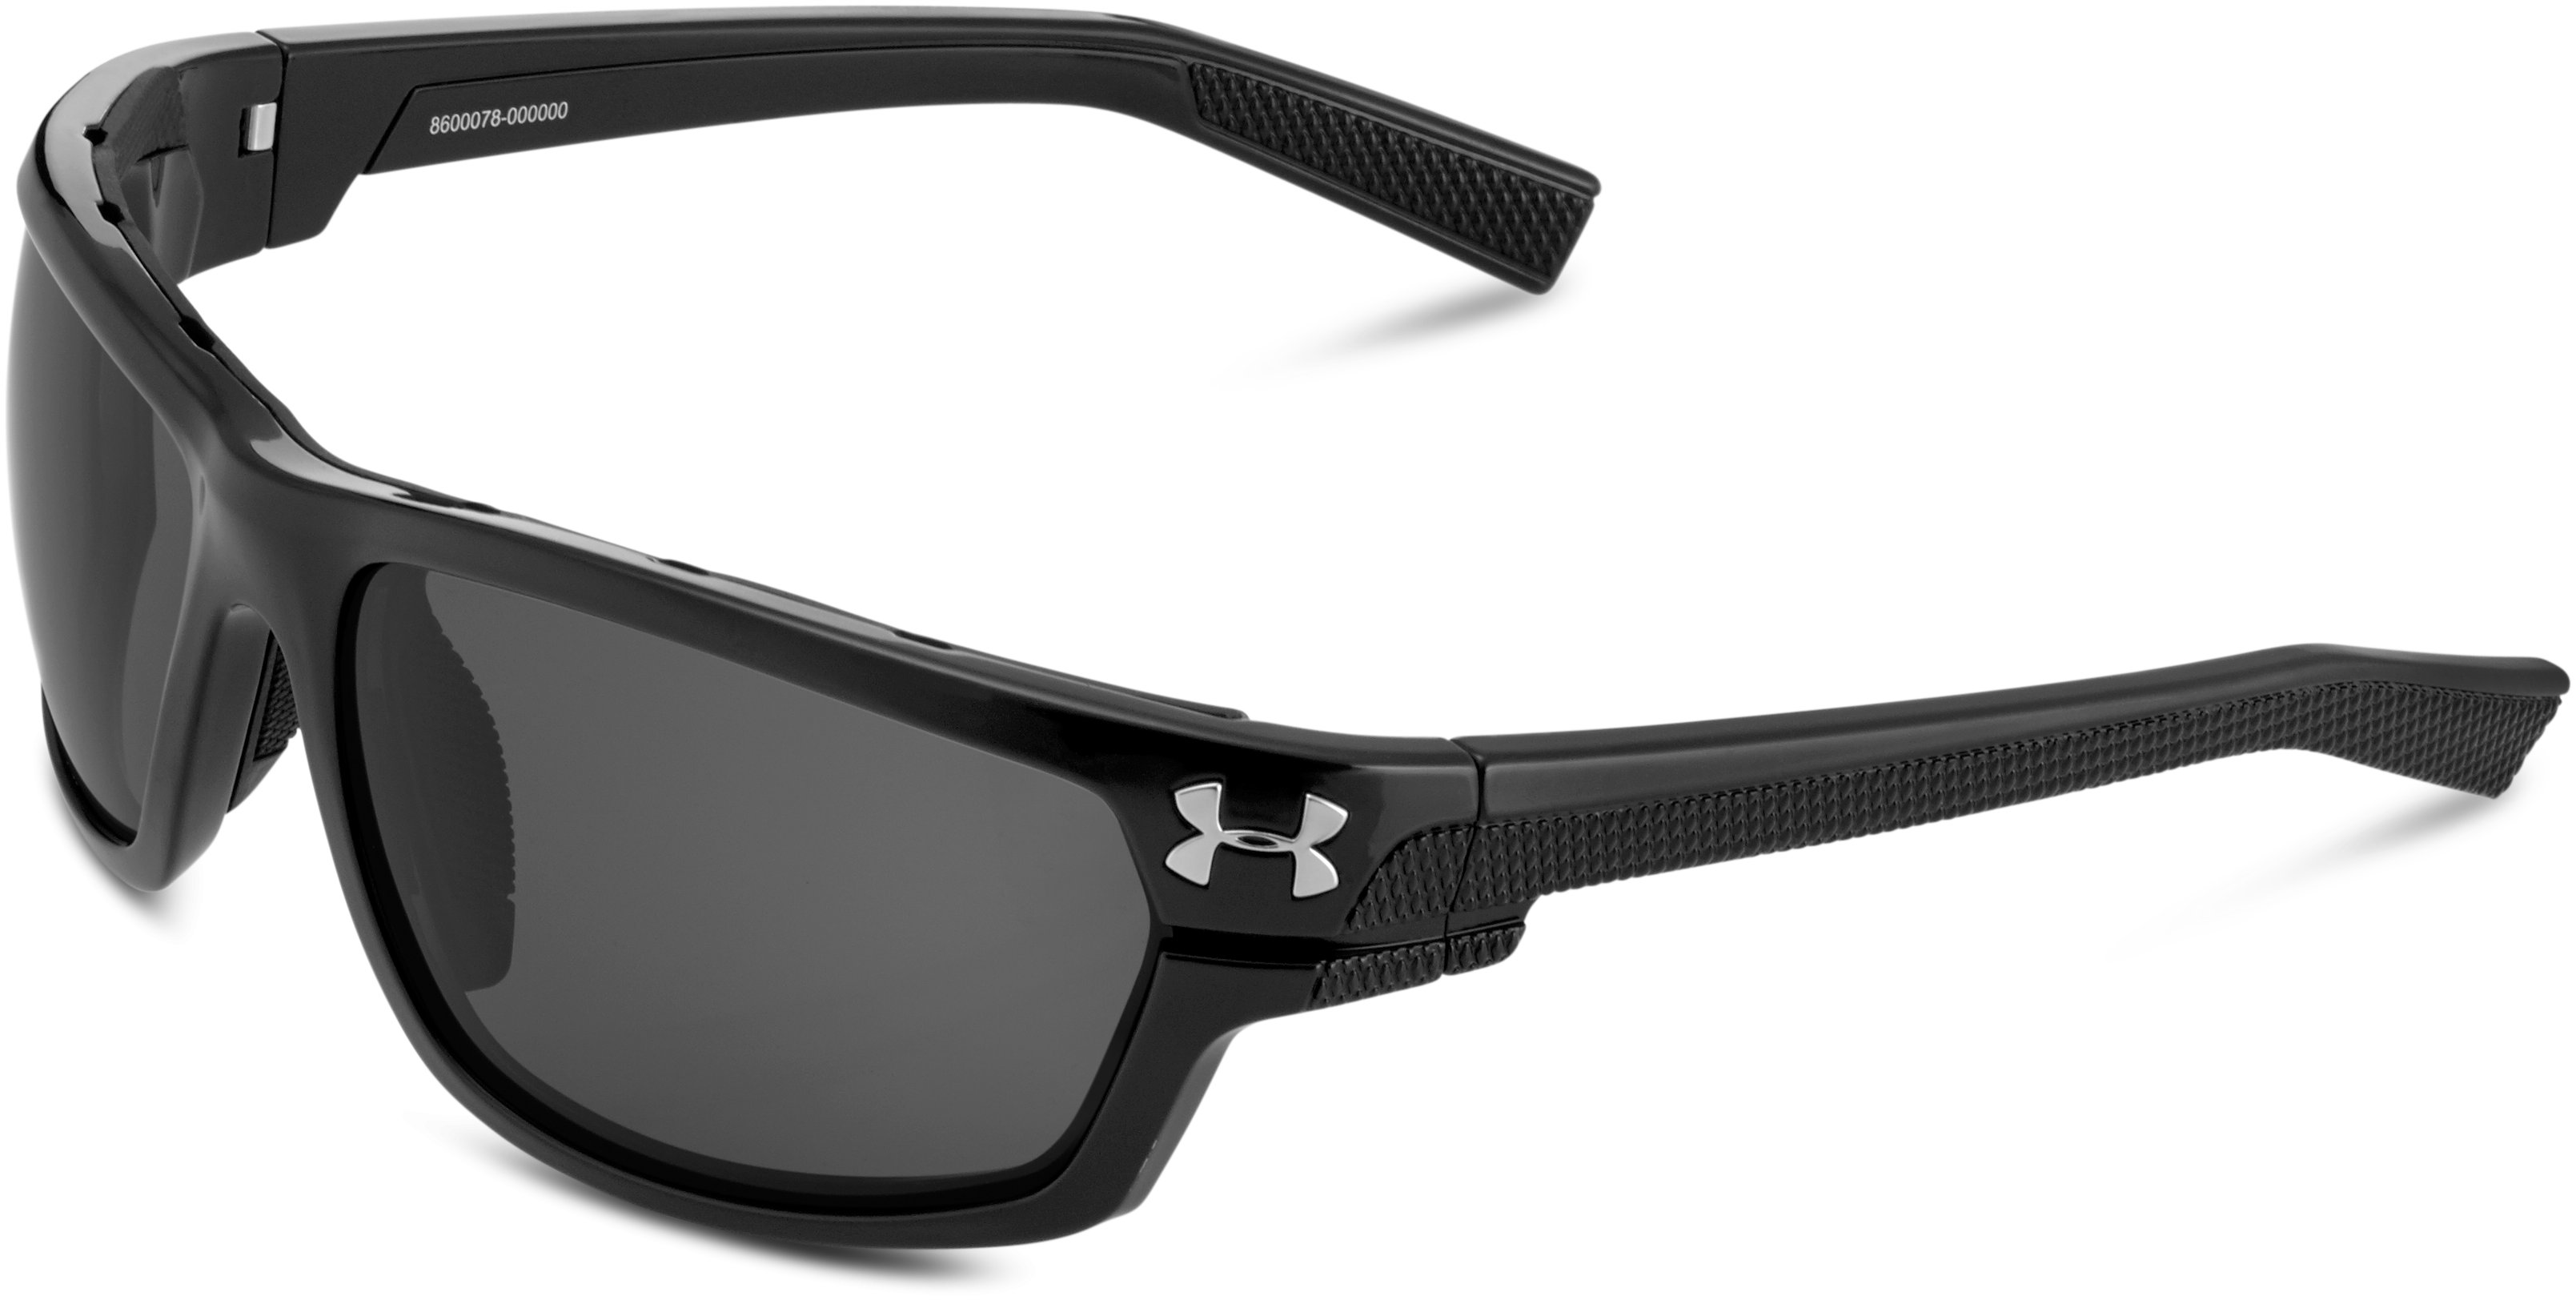 NEW UNDER ARMOUR Igniter Sunglasses - Choose Your Color and Style! - $ Always Brand New - Always First Quality - Always Authentic NEW Under Armour Igniter Sunglasses Choose Your Color from the drop-down box above Full Retail Package Enjoy Under Armour's unique sport styling with the Igniter!